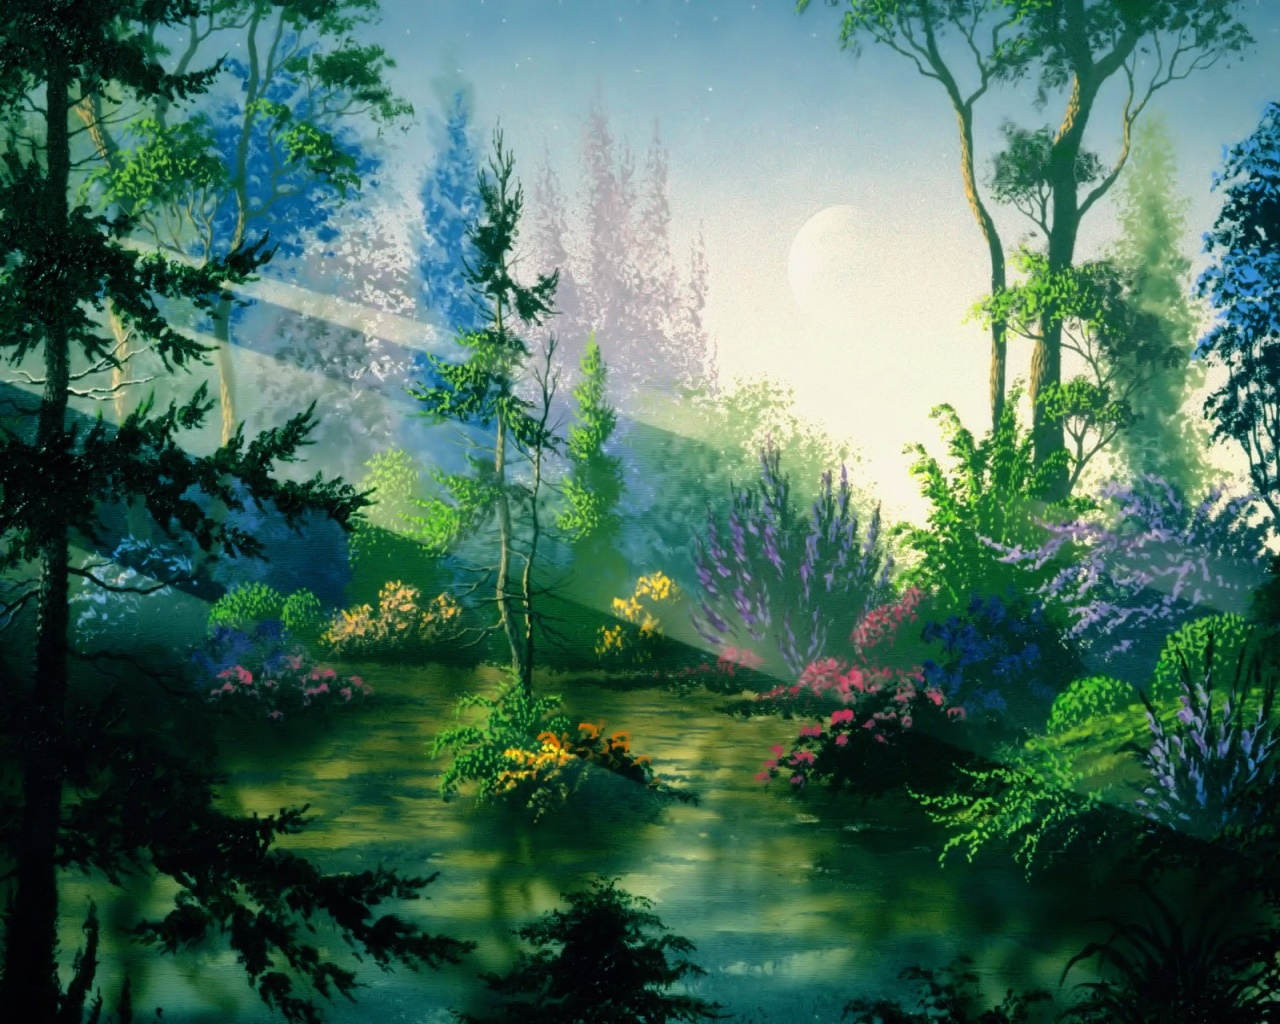 Cool Wallpaper Mac Forest - syxRUh  Graphic_94990.jpg